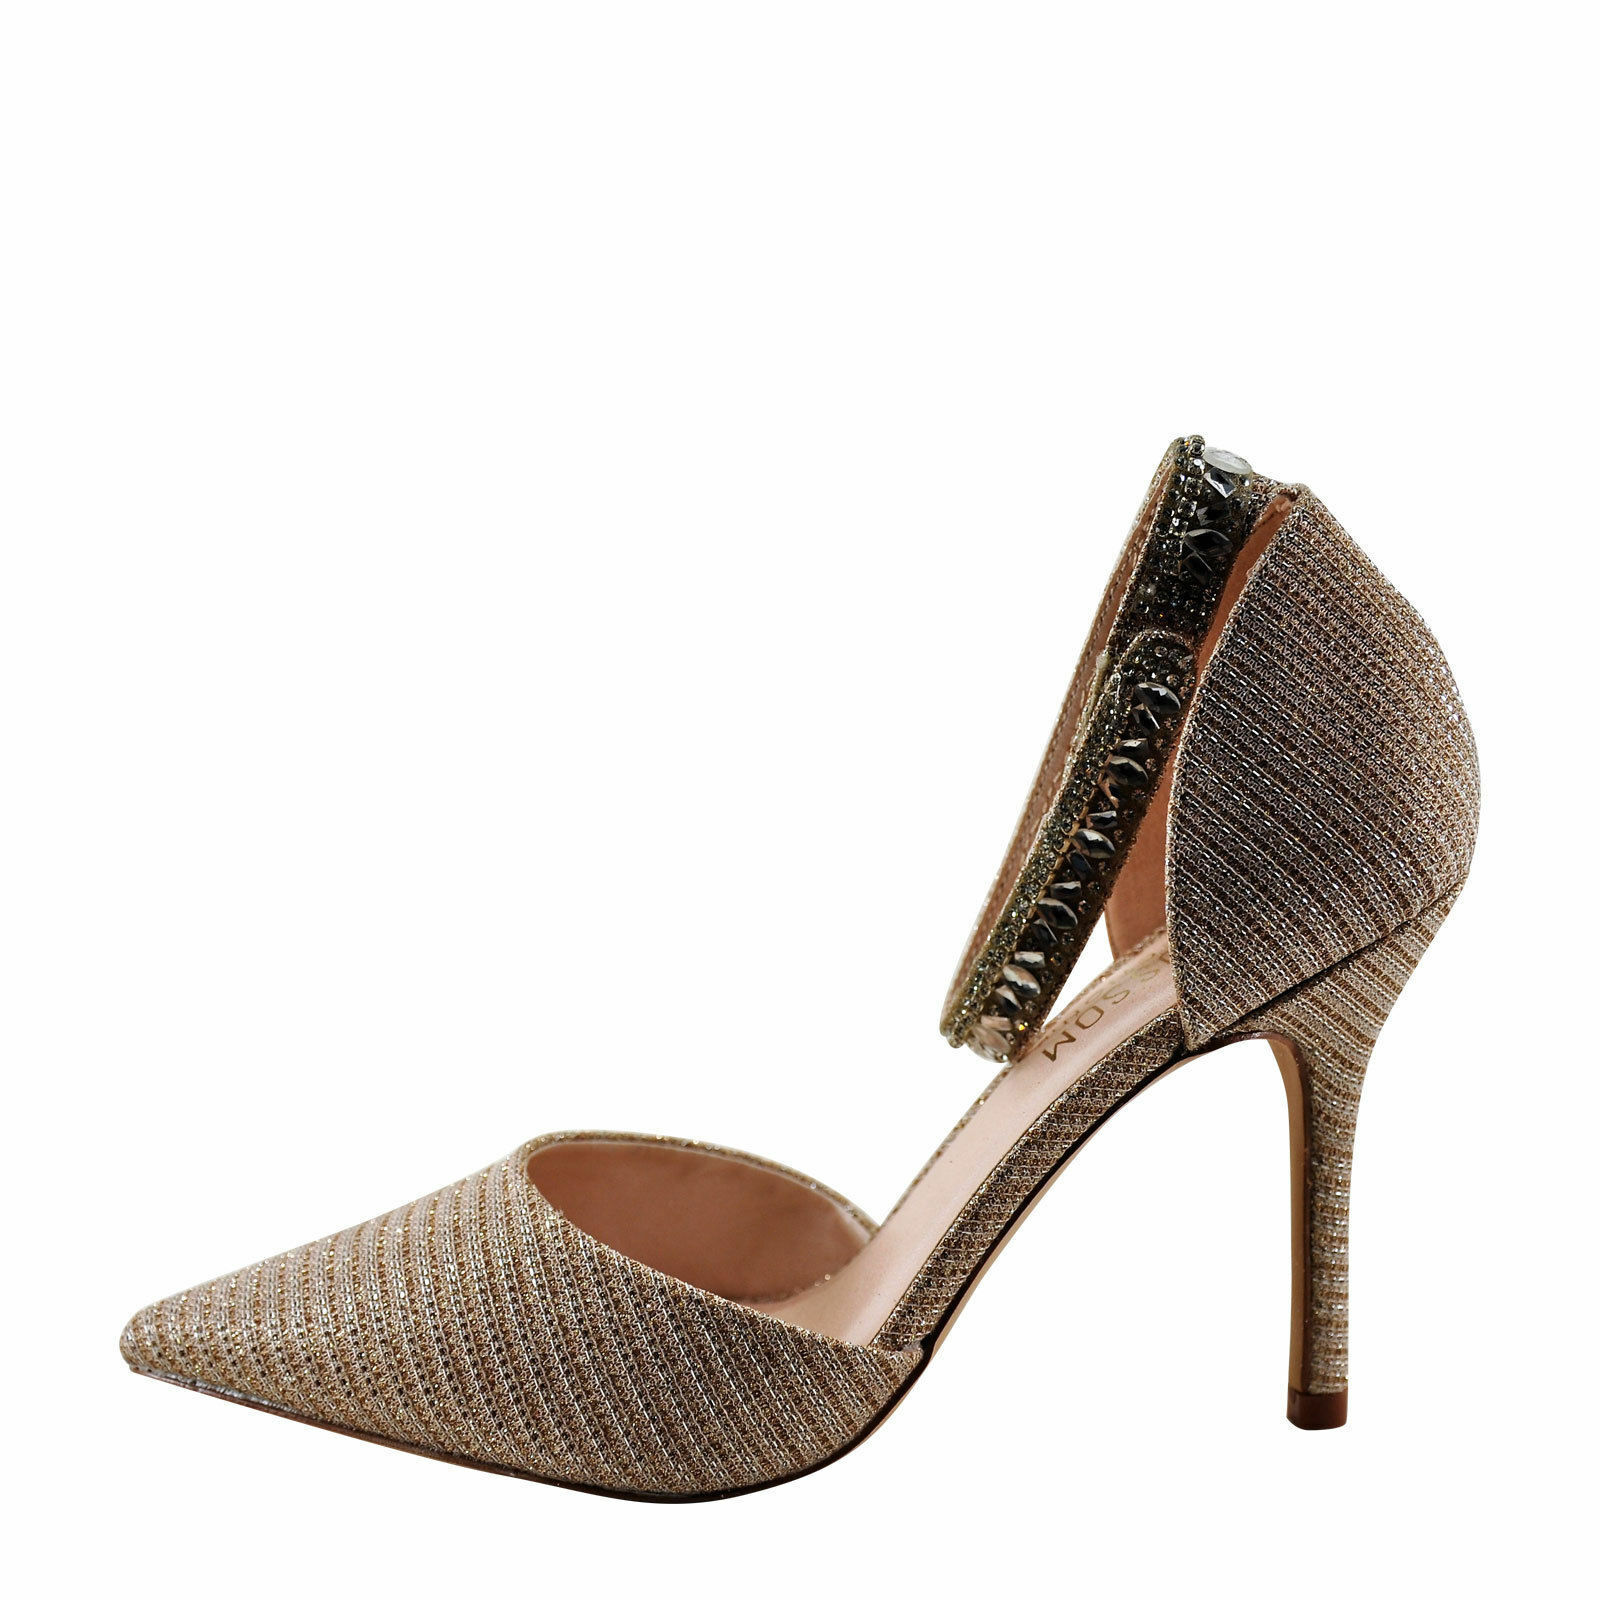 Blossom Renzo 65 Nude Women's Pointed Toe Ankle Strap Heel